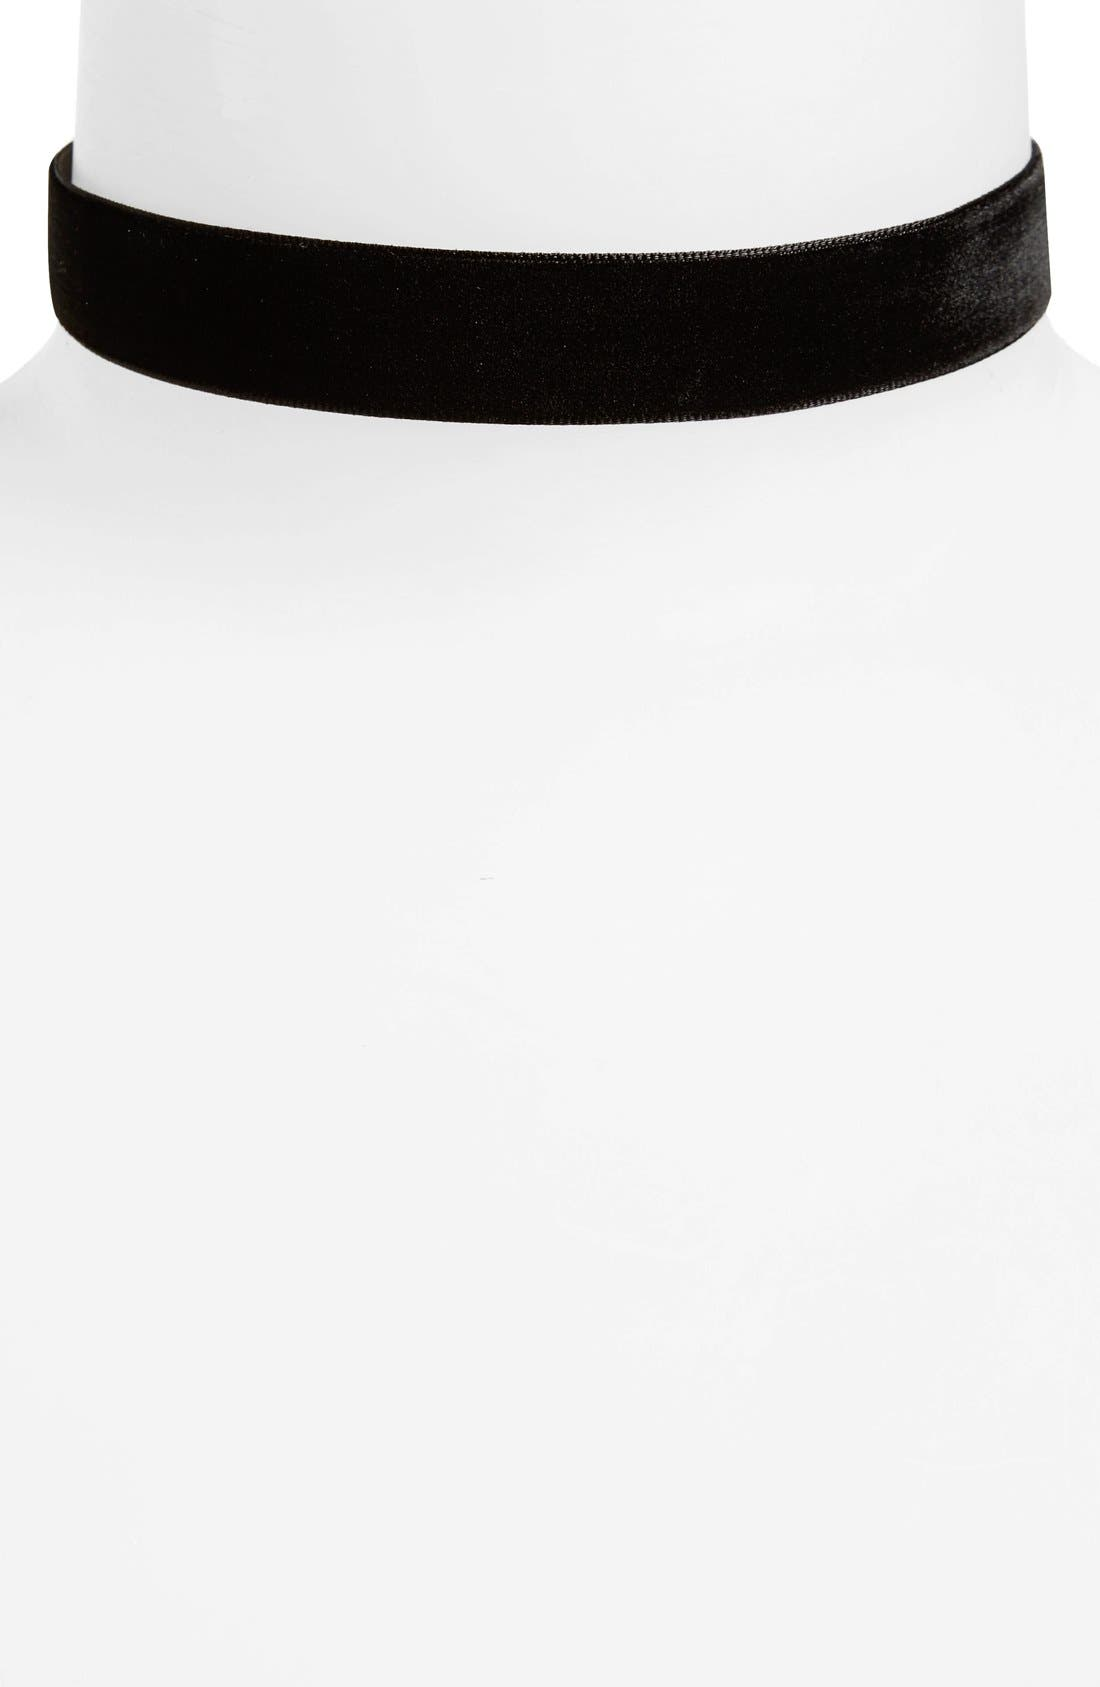 Main Image - Topshop 'Thick and Thin' Velvet Chokers (Set of 2)